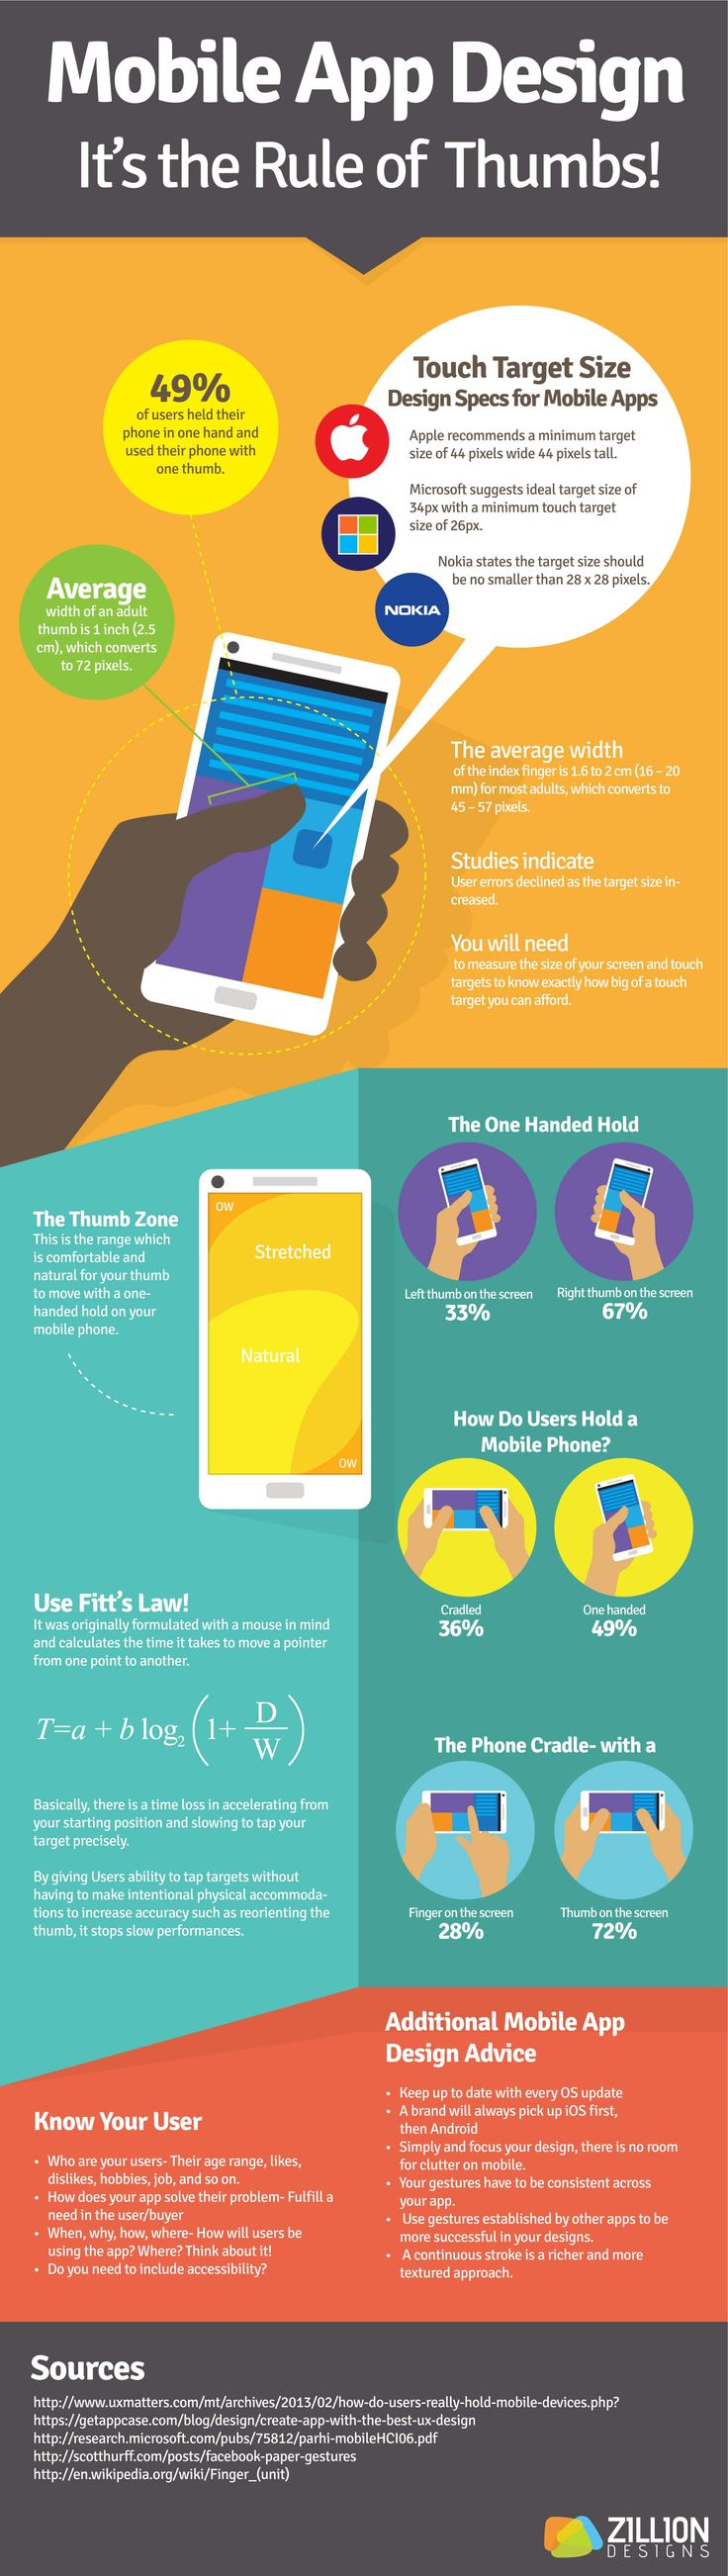 Infographic Mobile App Design – It's the Rule of Thumbs!